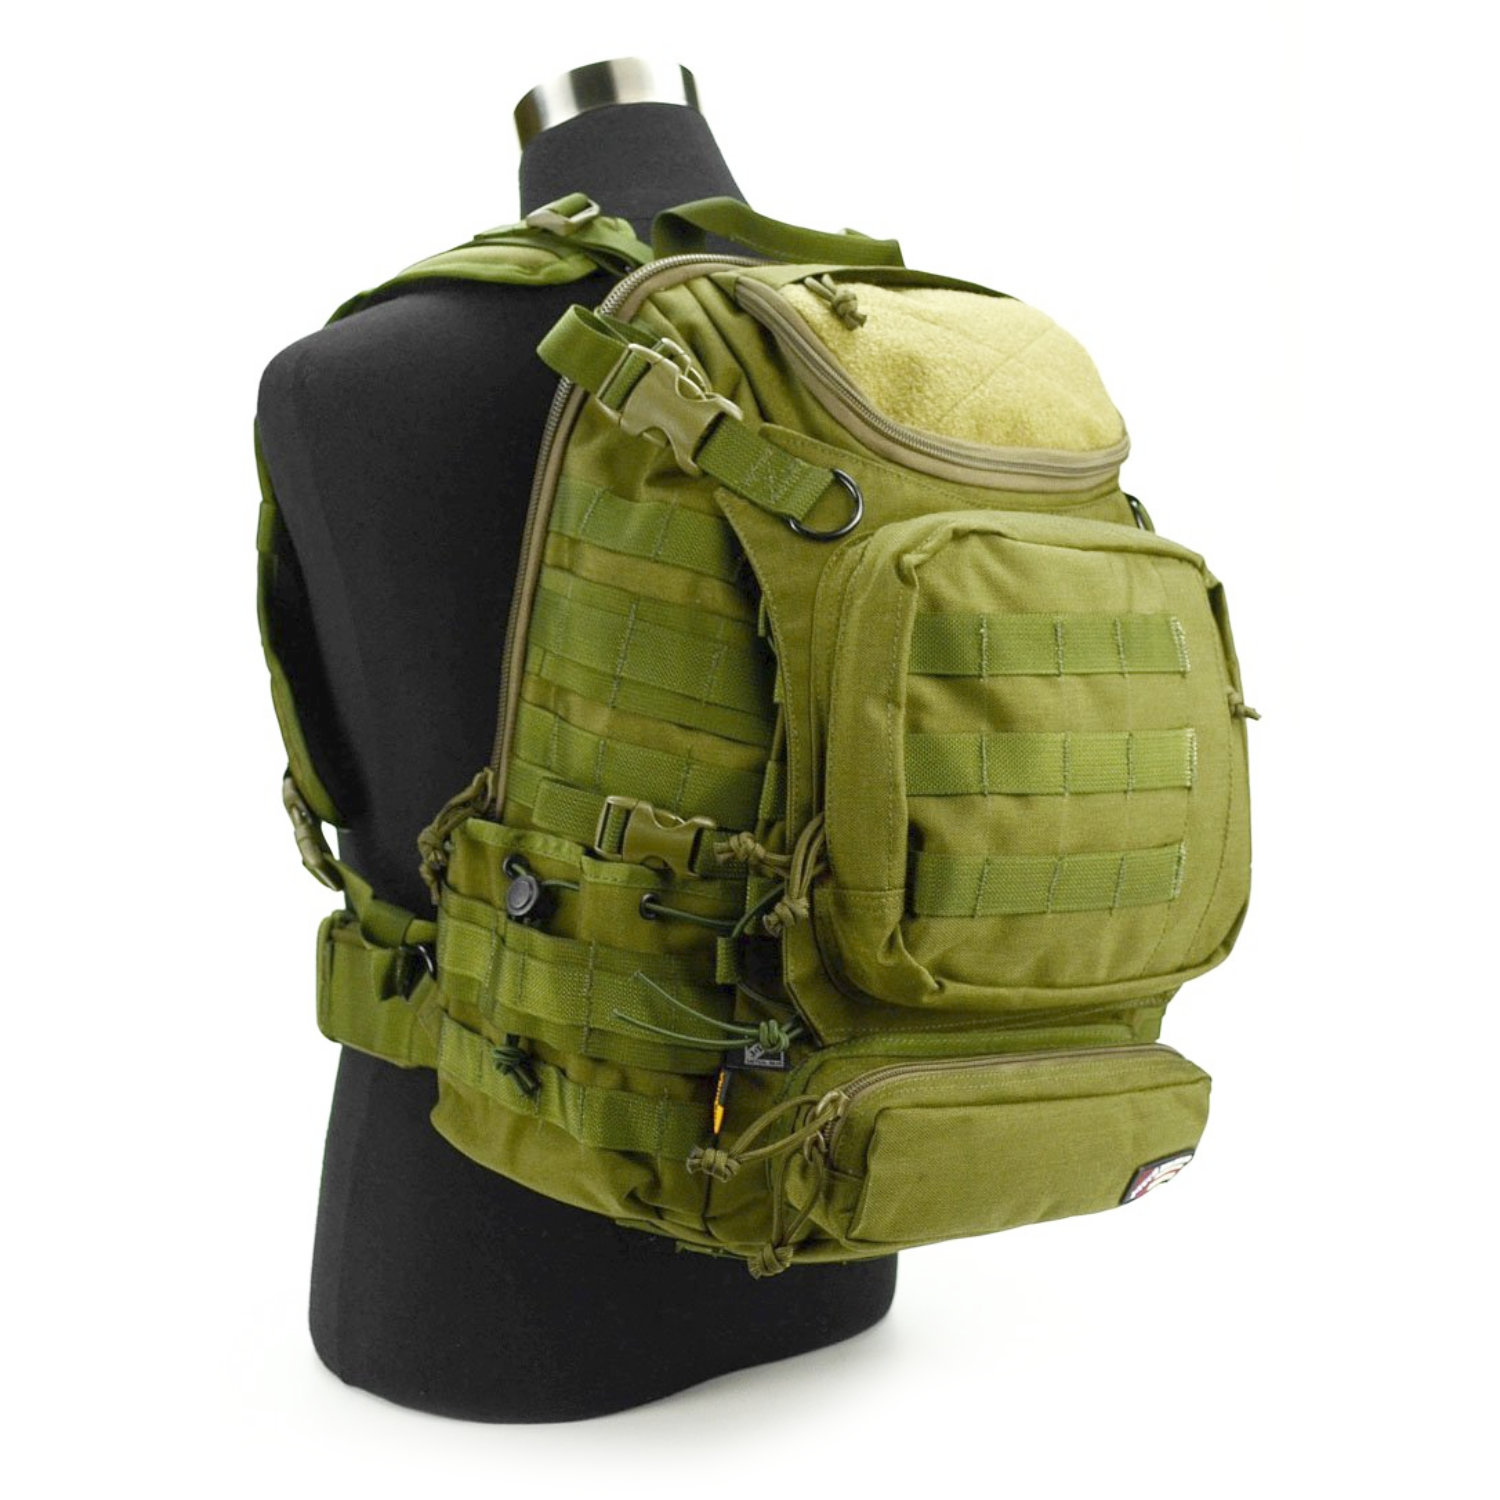 Heracles Backpack - JTech Gear